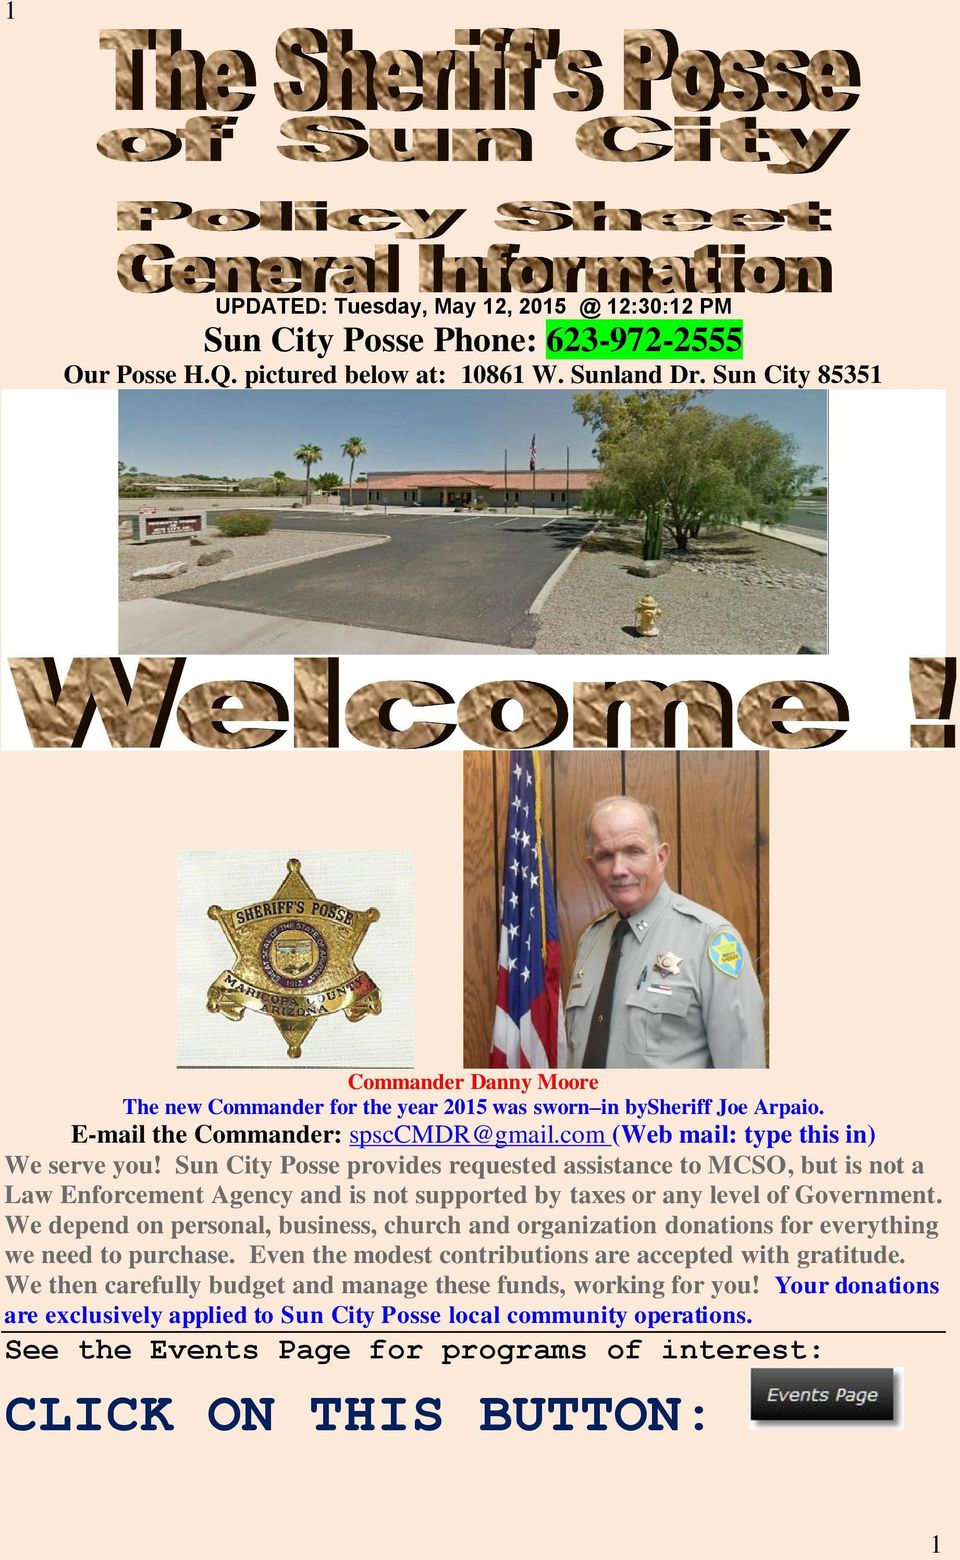 Sun City Posse provides requested assistance to MCSO, but is not a Law Enforcement Agency and is not supported by taxes or any level of Government.